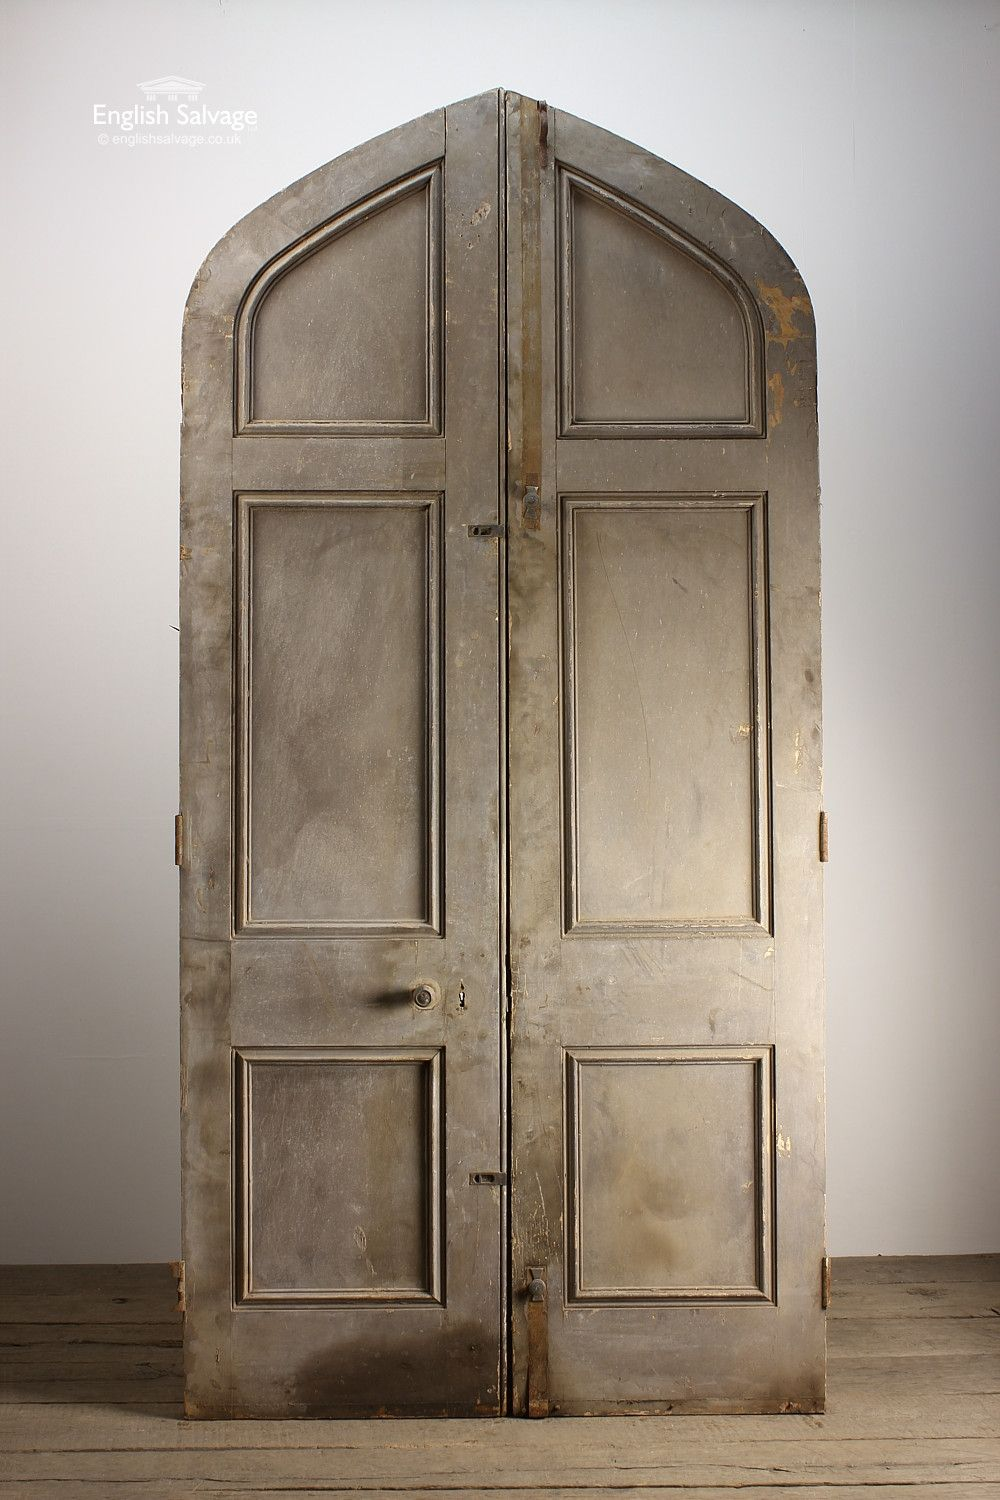 English Salvage (formerly Leominster Reclamation) are the premier architectural salvage and Reclamation Yard in the UK. Providing everything from reclaimed ... & Reclaimed Period Oak Plank Double Arch Doors | Reclaimed Doors ... pezcame.com